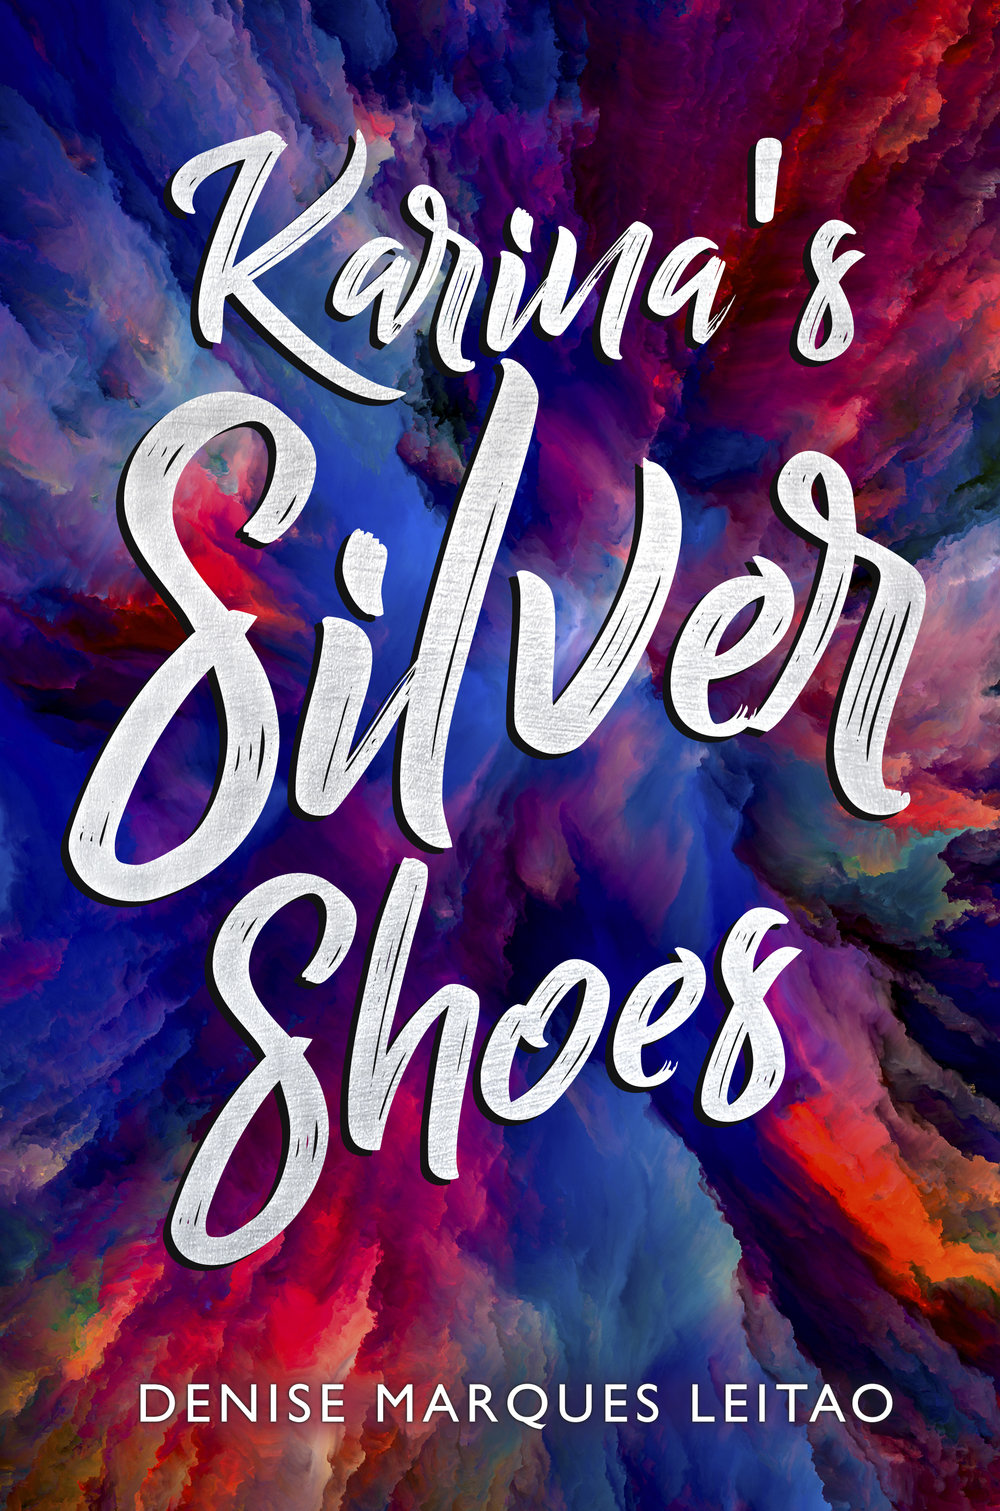 Karina's Silver Shoes cover.jpg